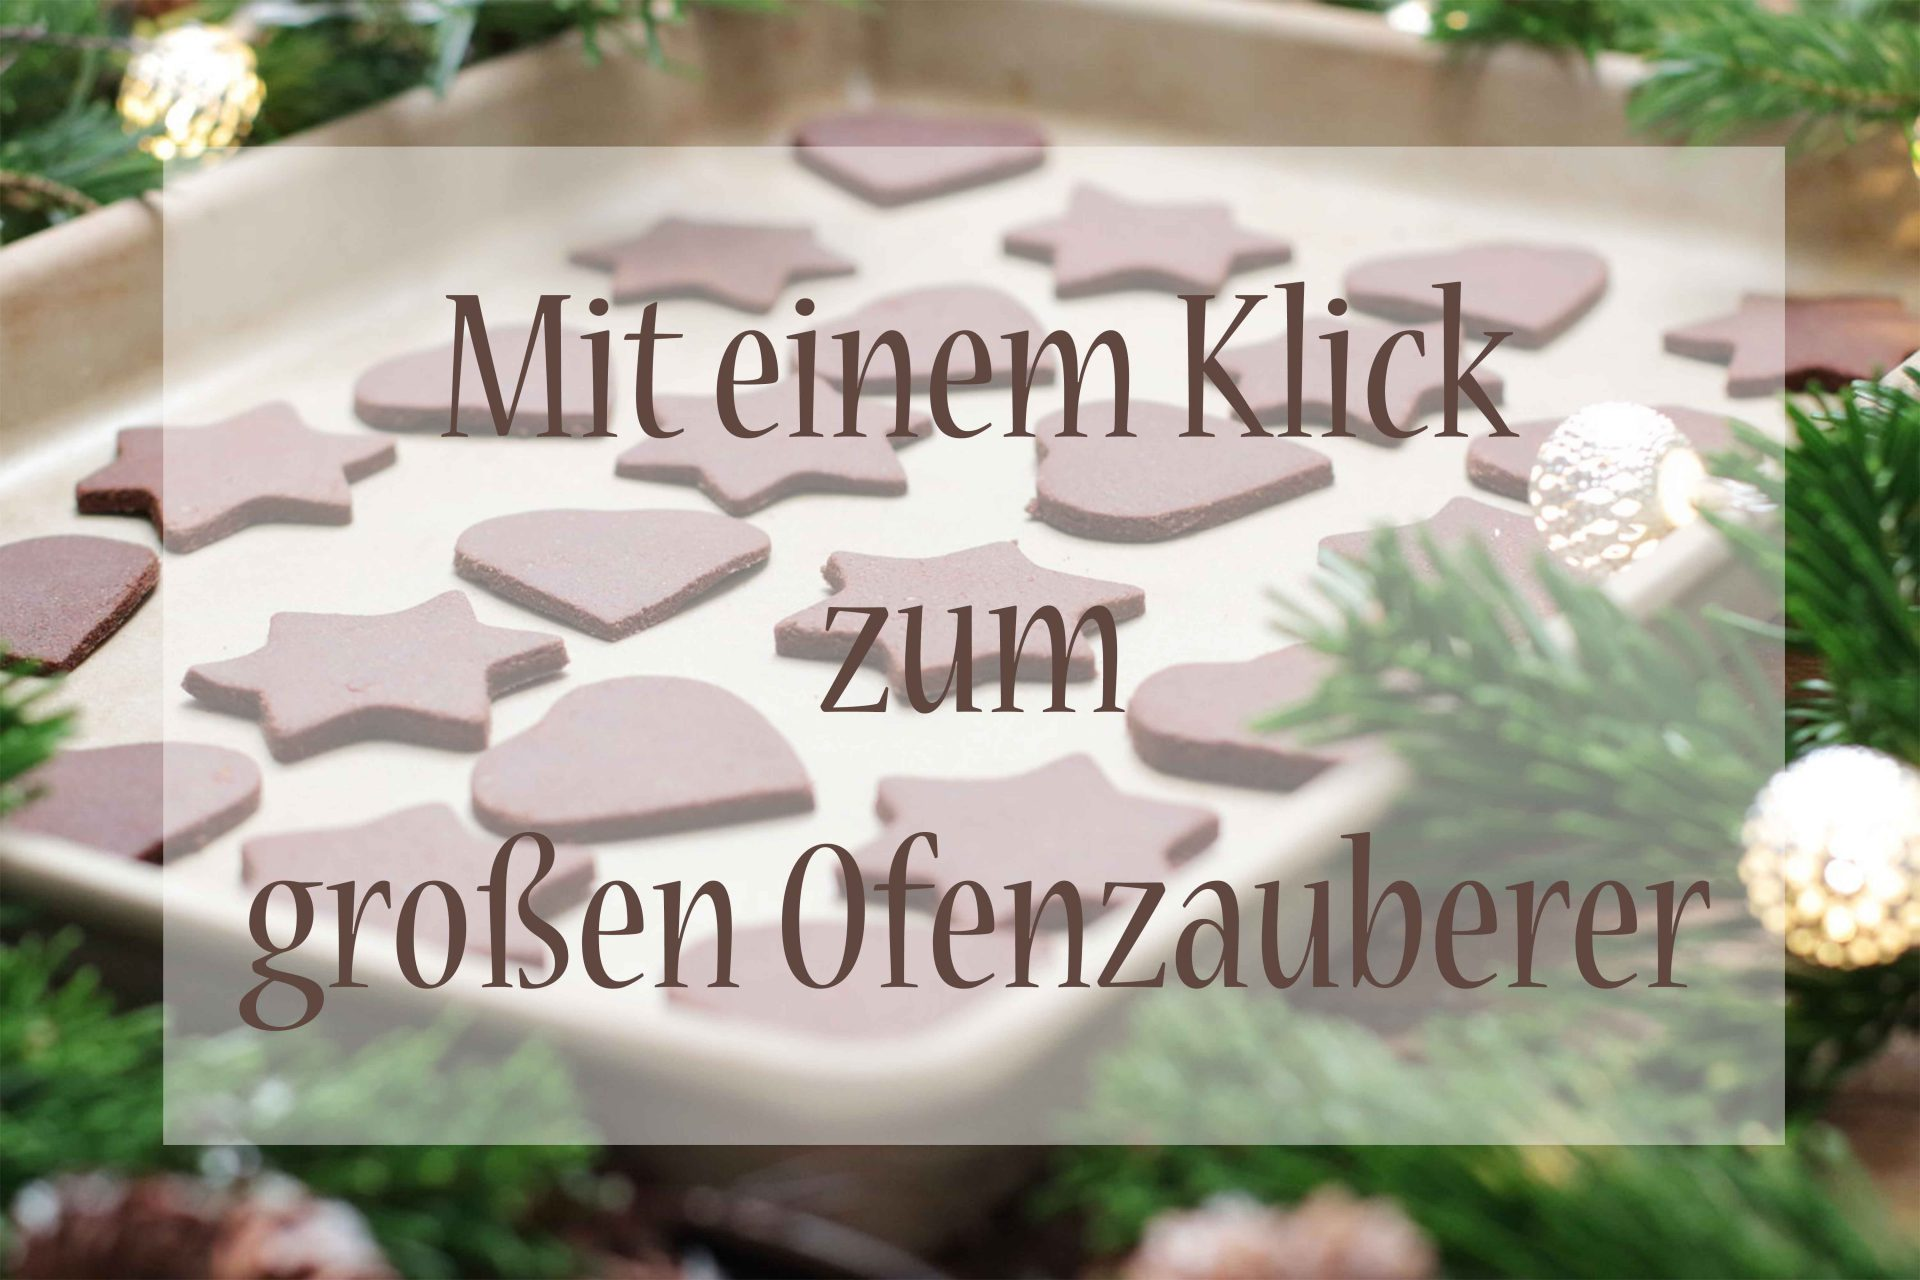 Großer Ofenzauberer James Online Shop Foodrevers Kekse backen